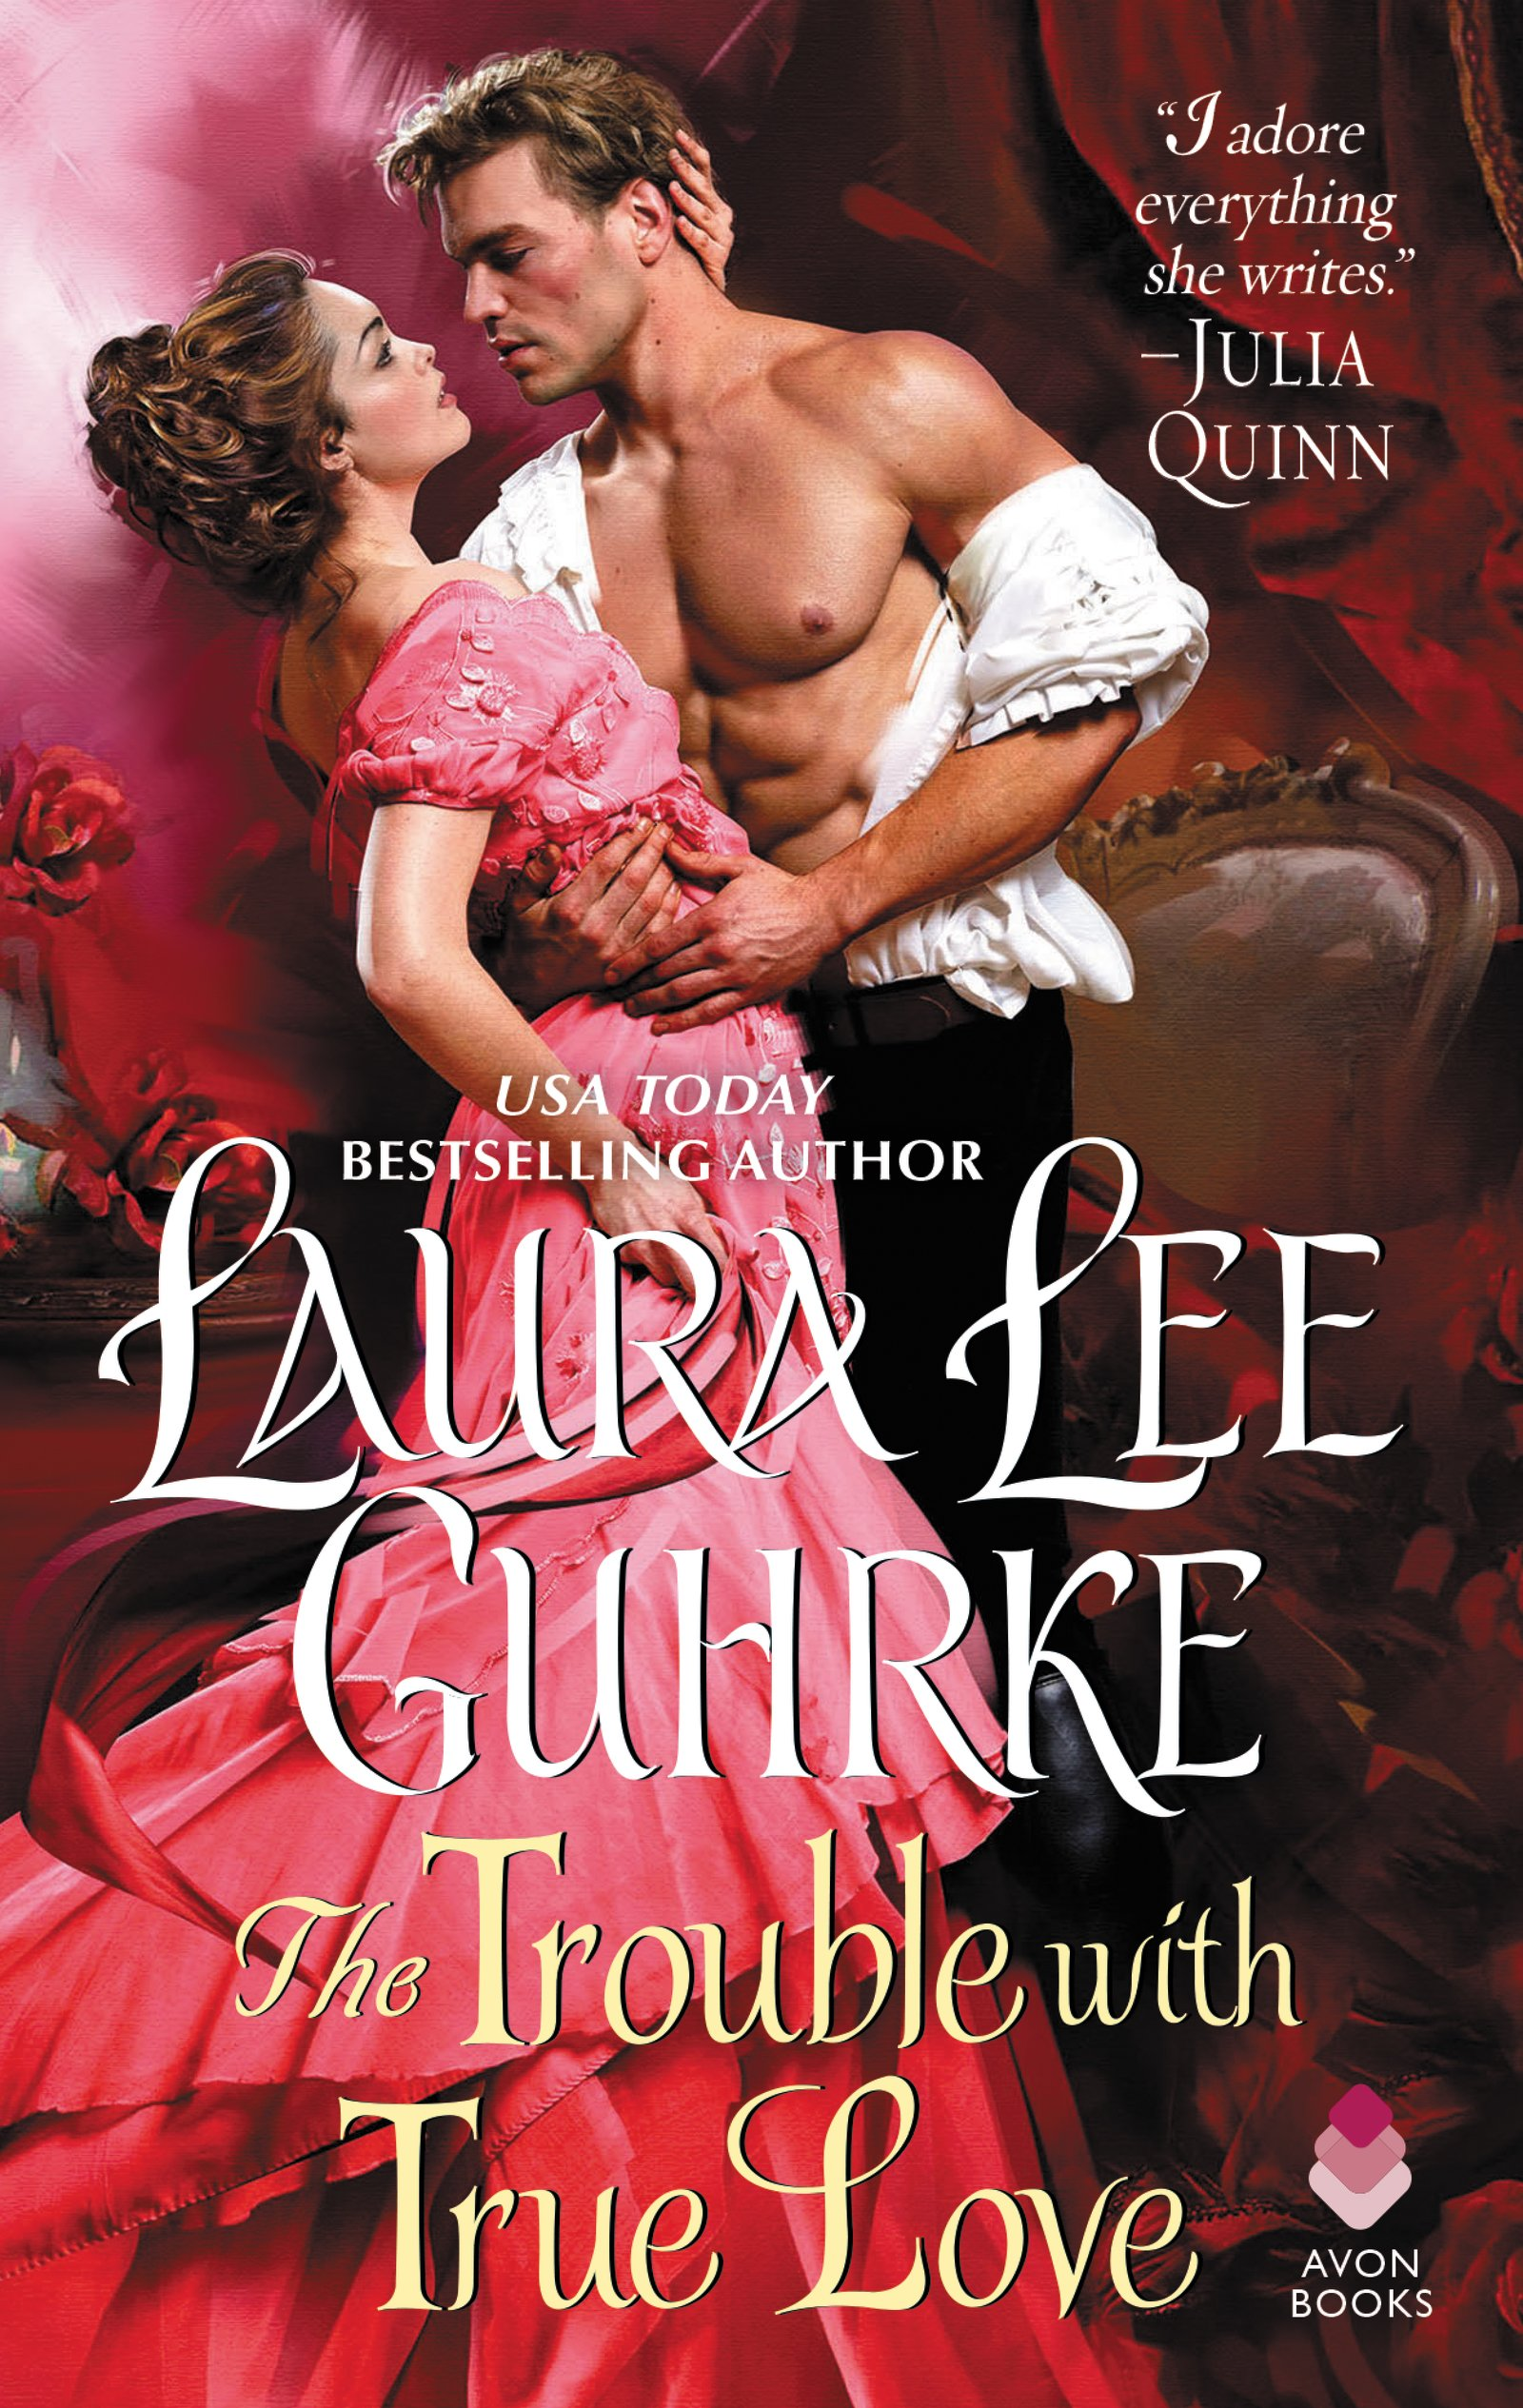 The Trouble with True Love by Laura Lee Guhrke